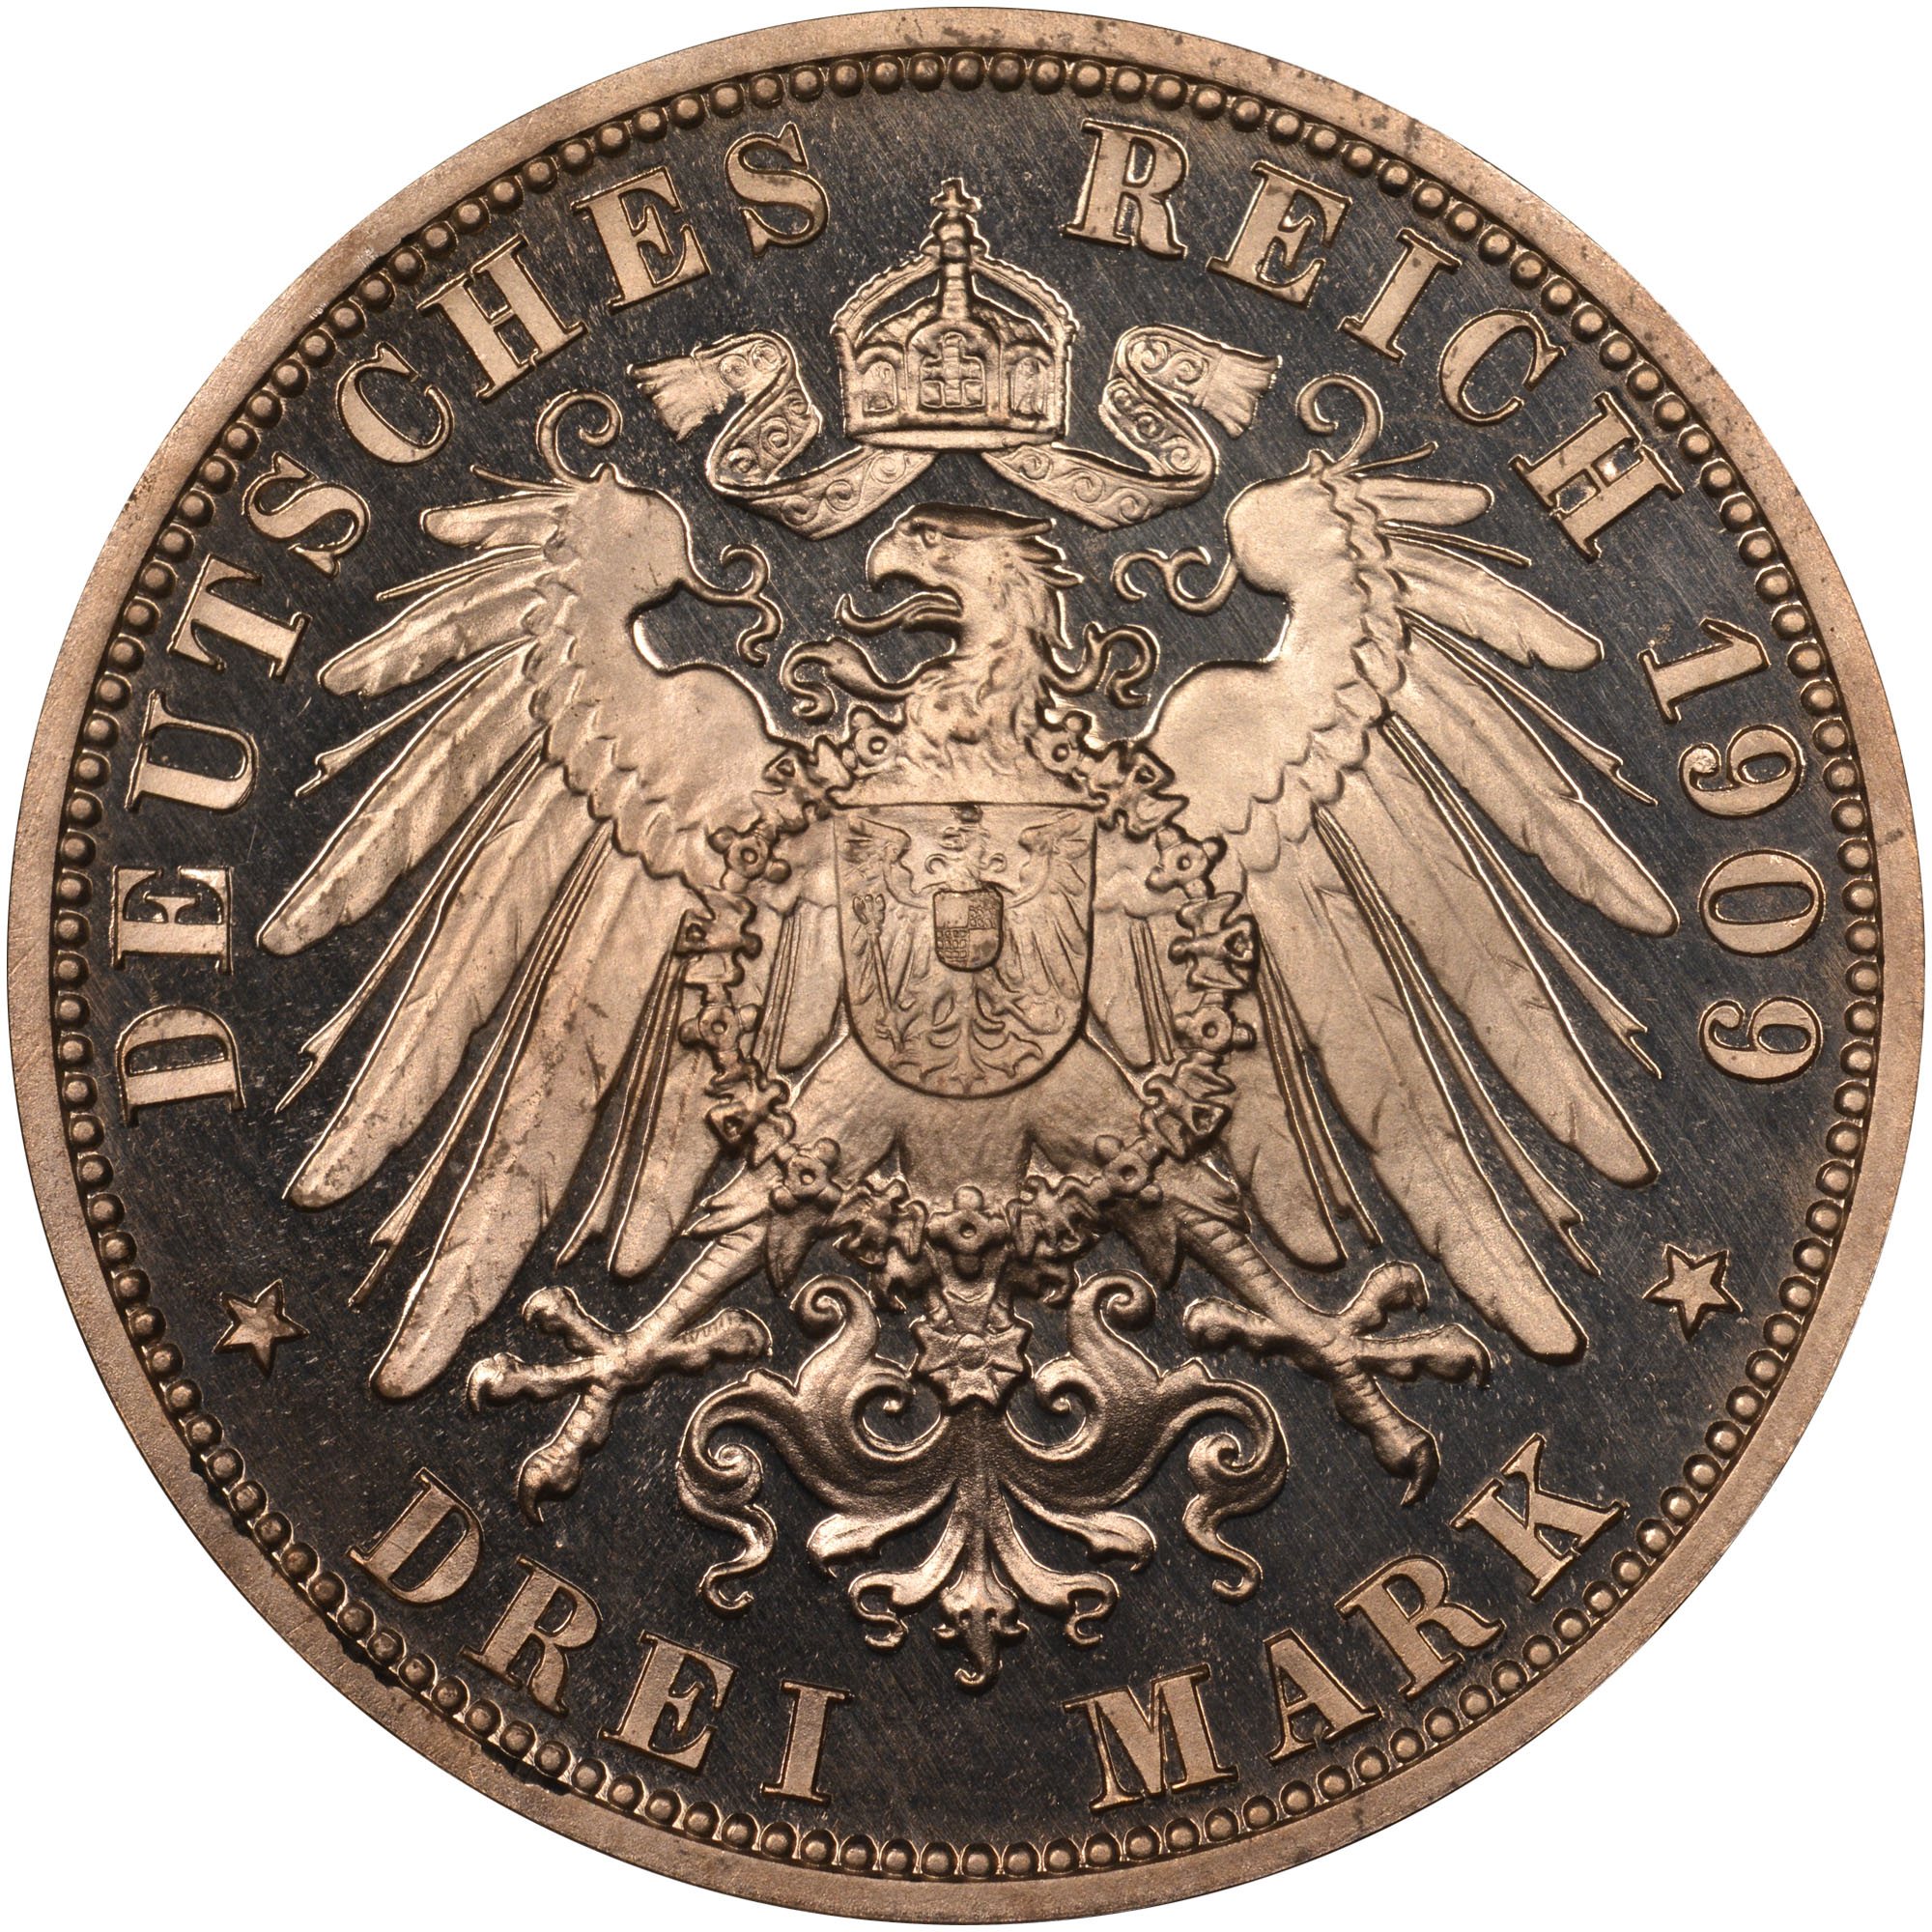 Nazi coin price guide / Fap to